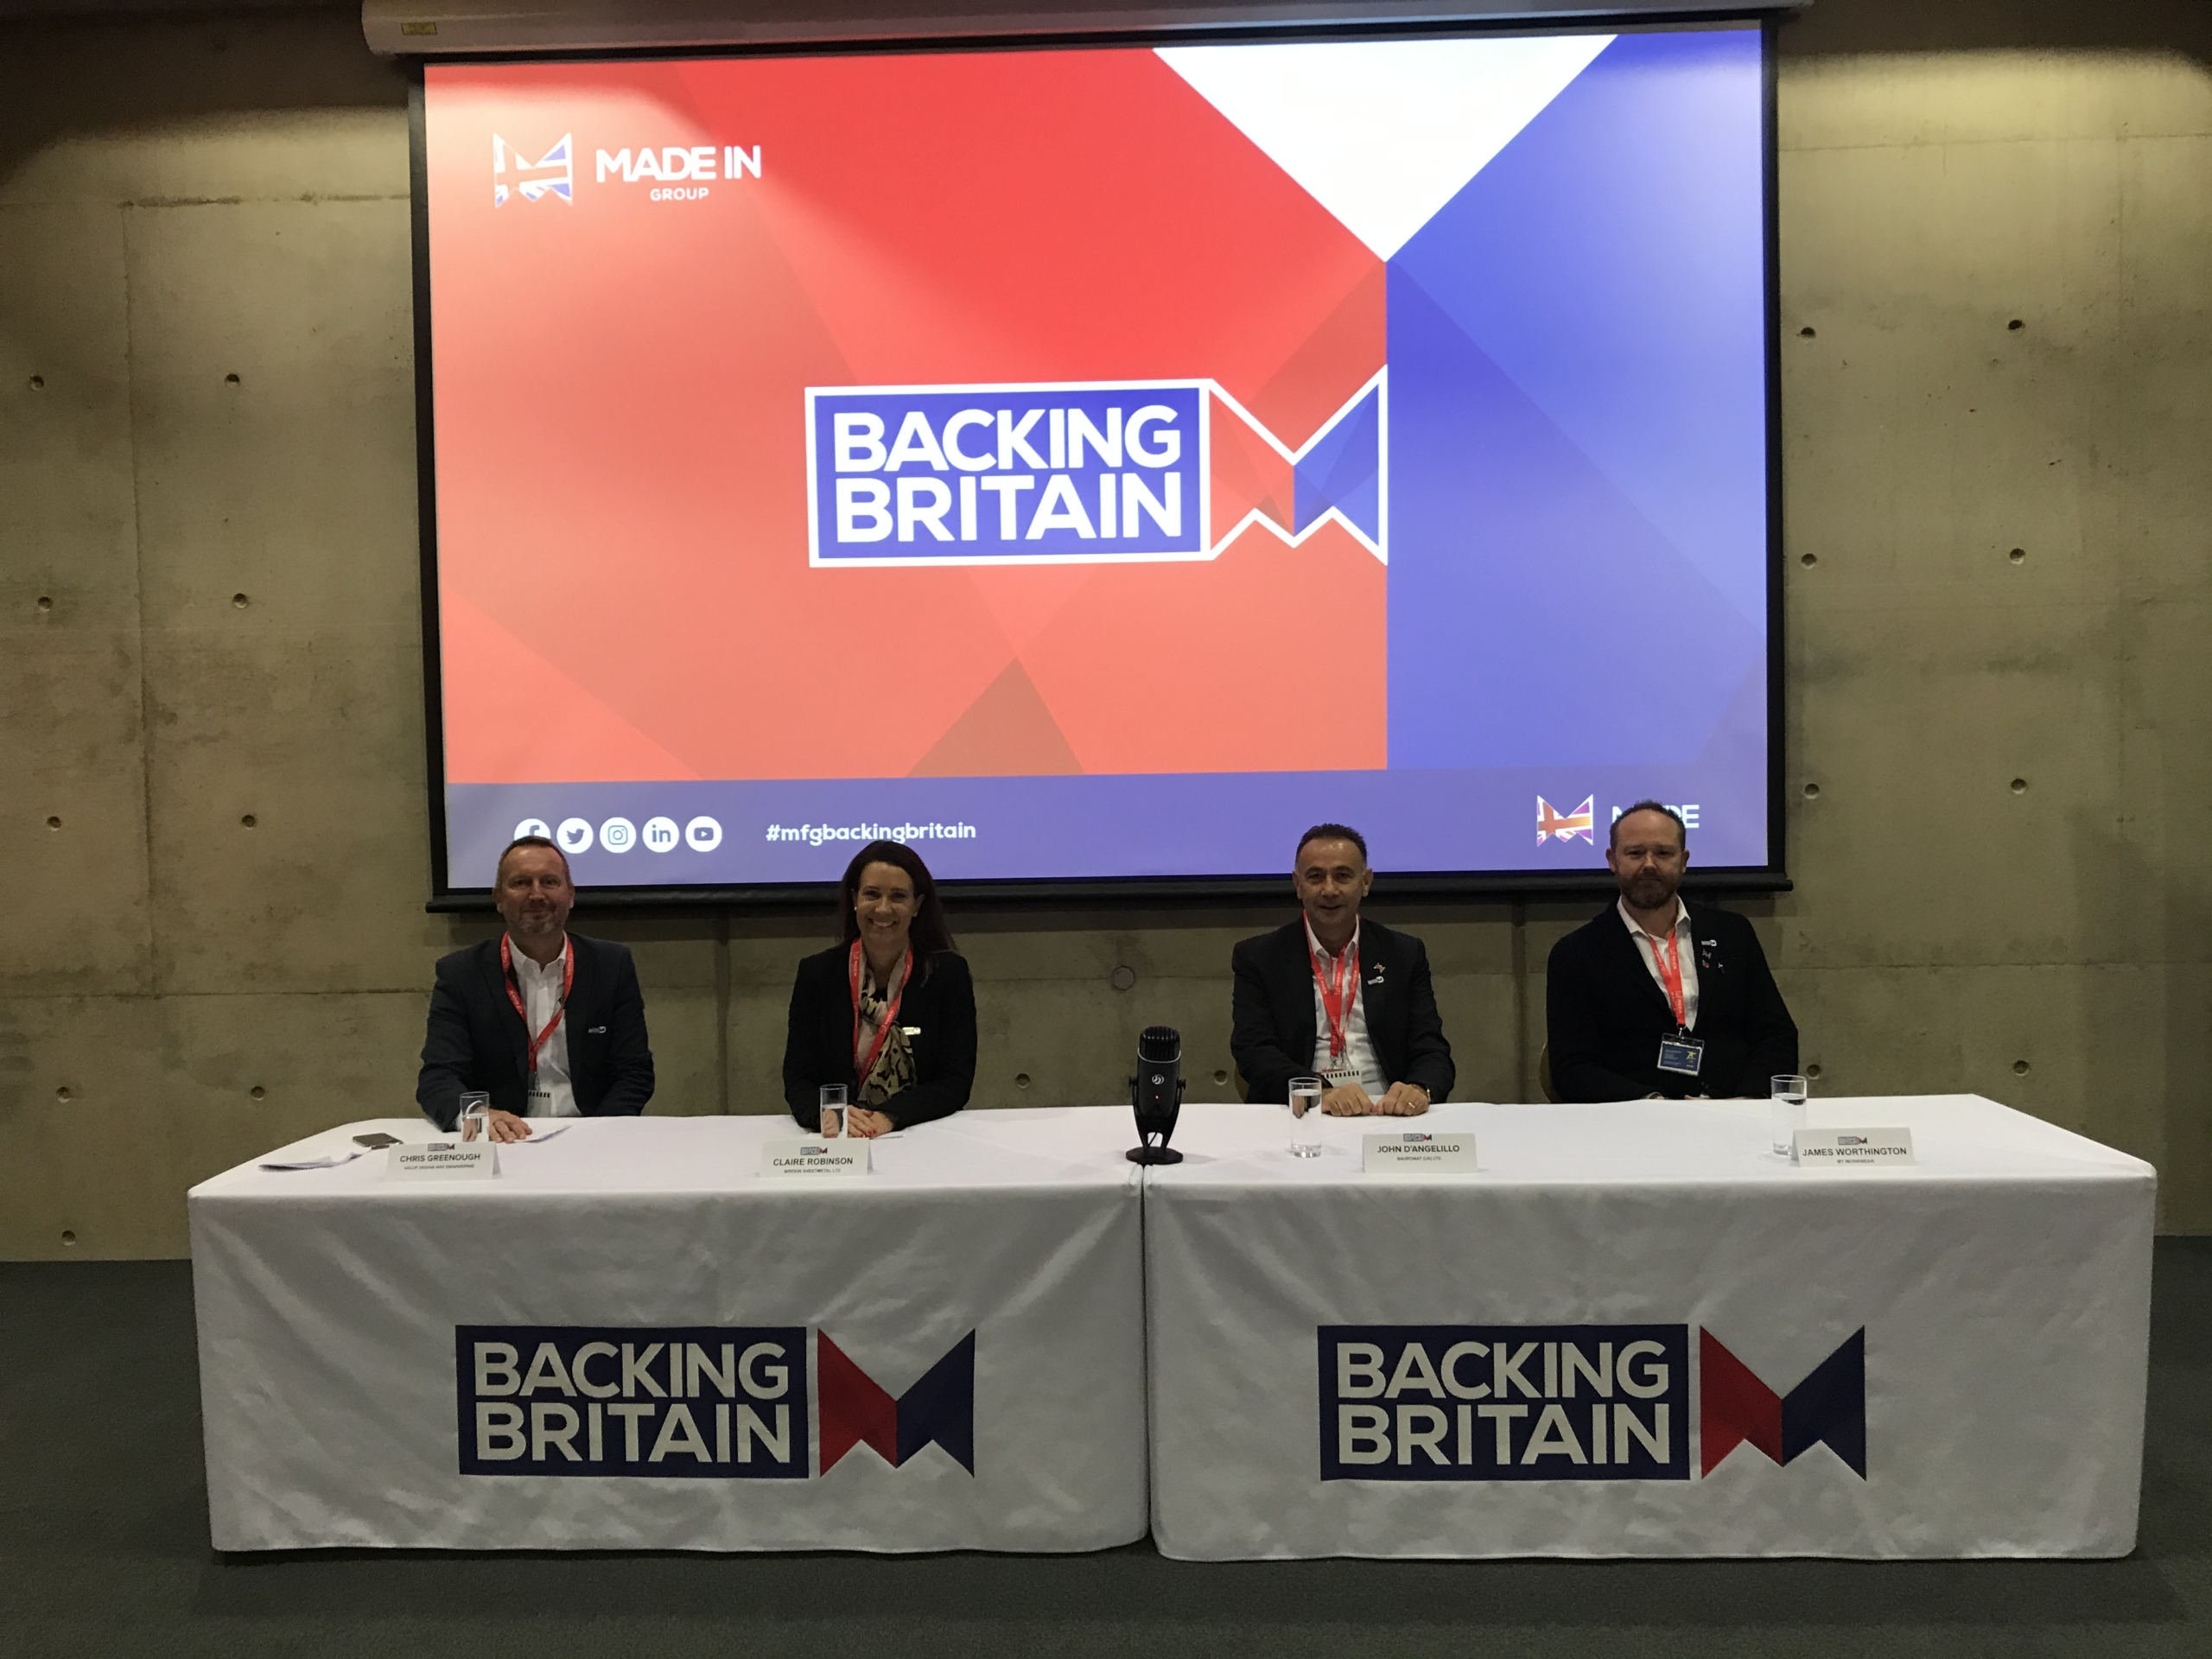 The panelists at the launch of Back Britain